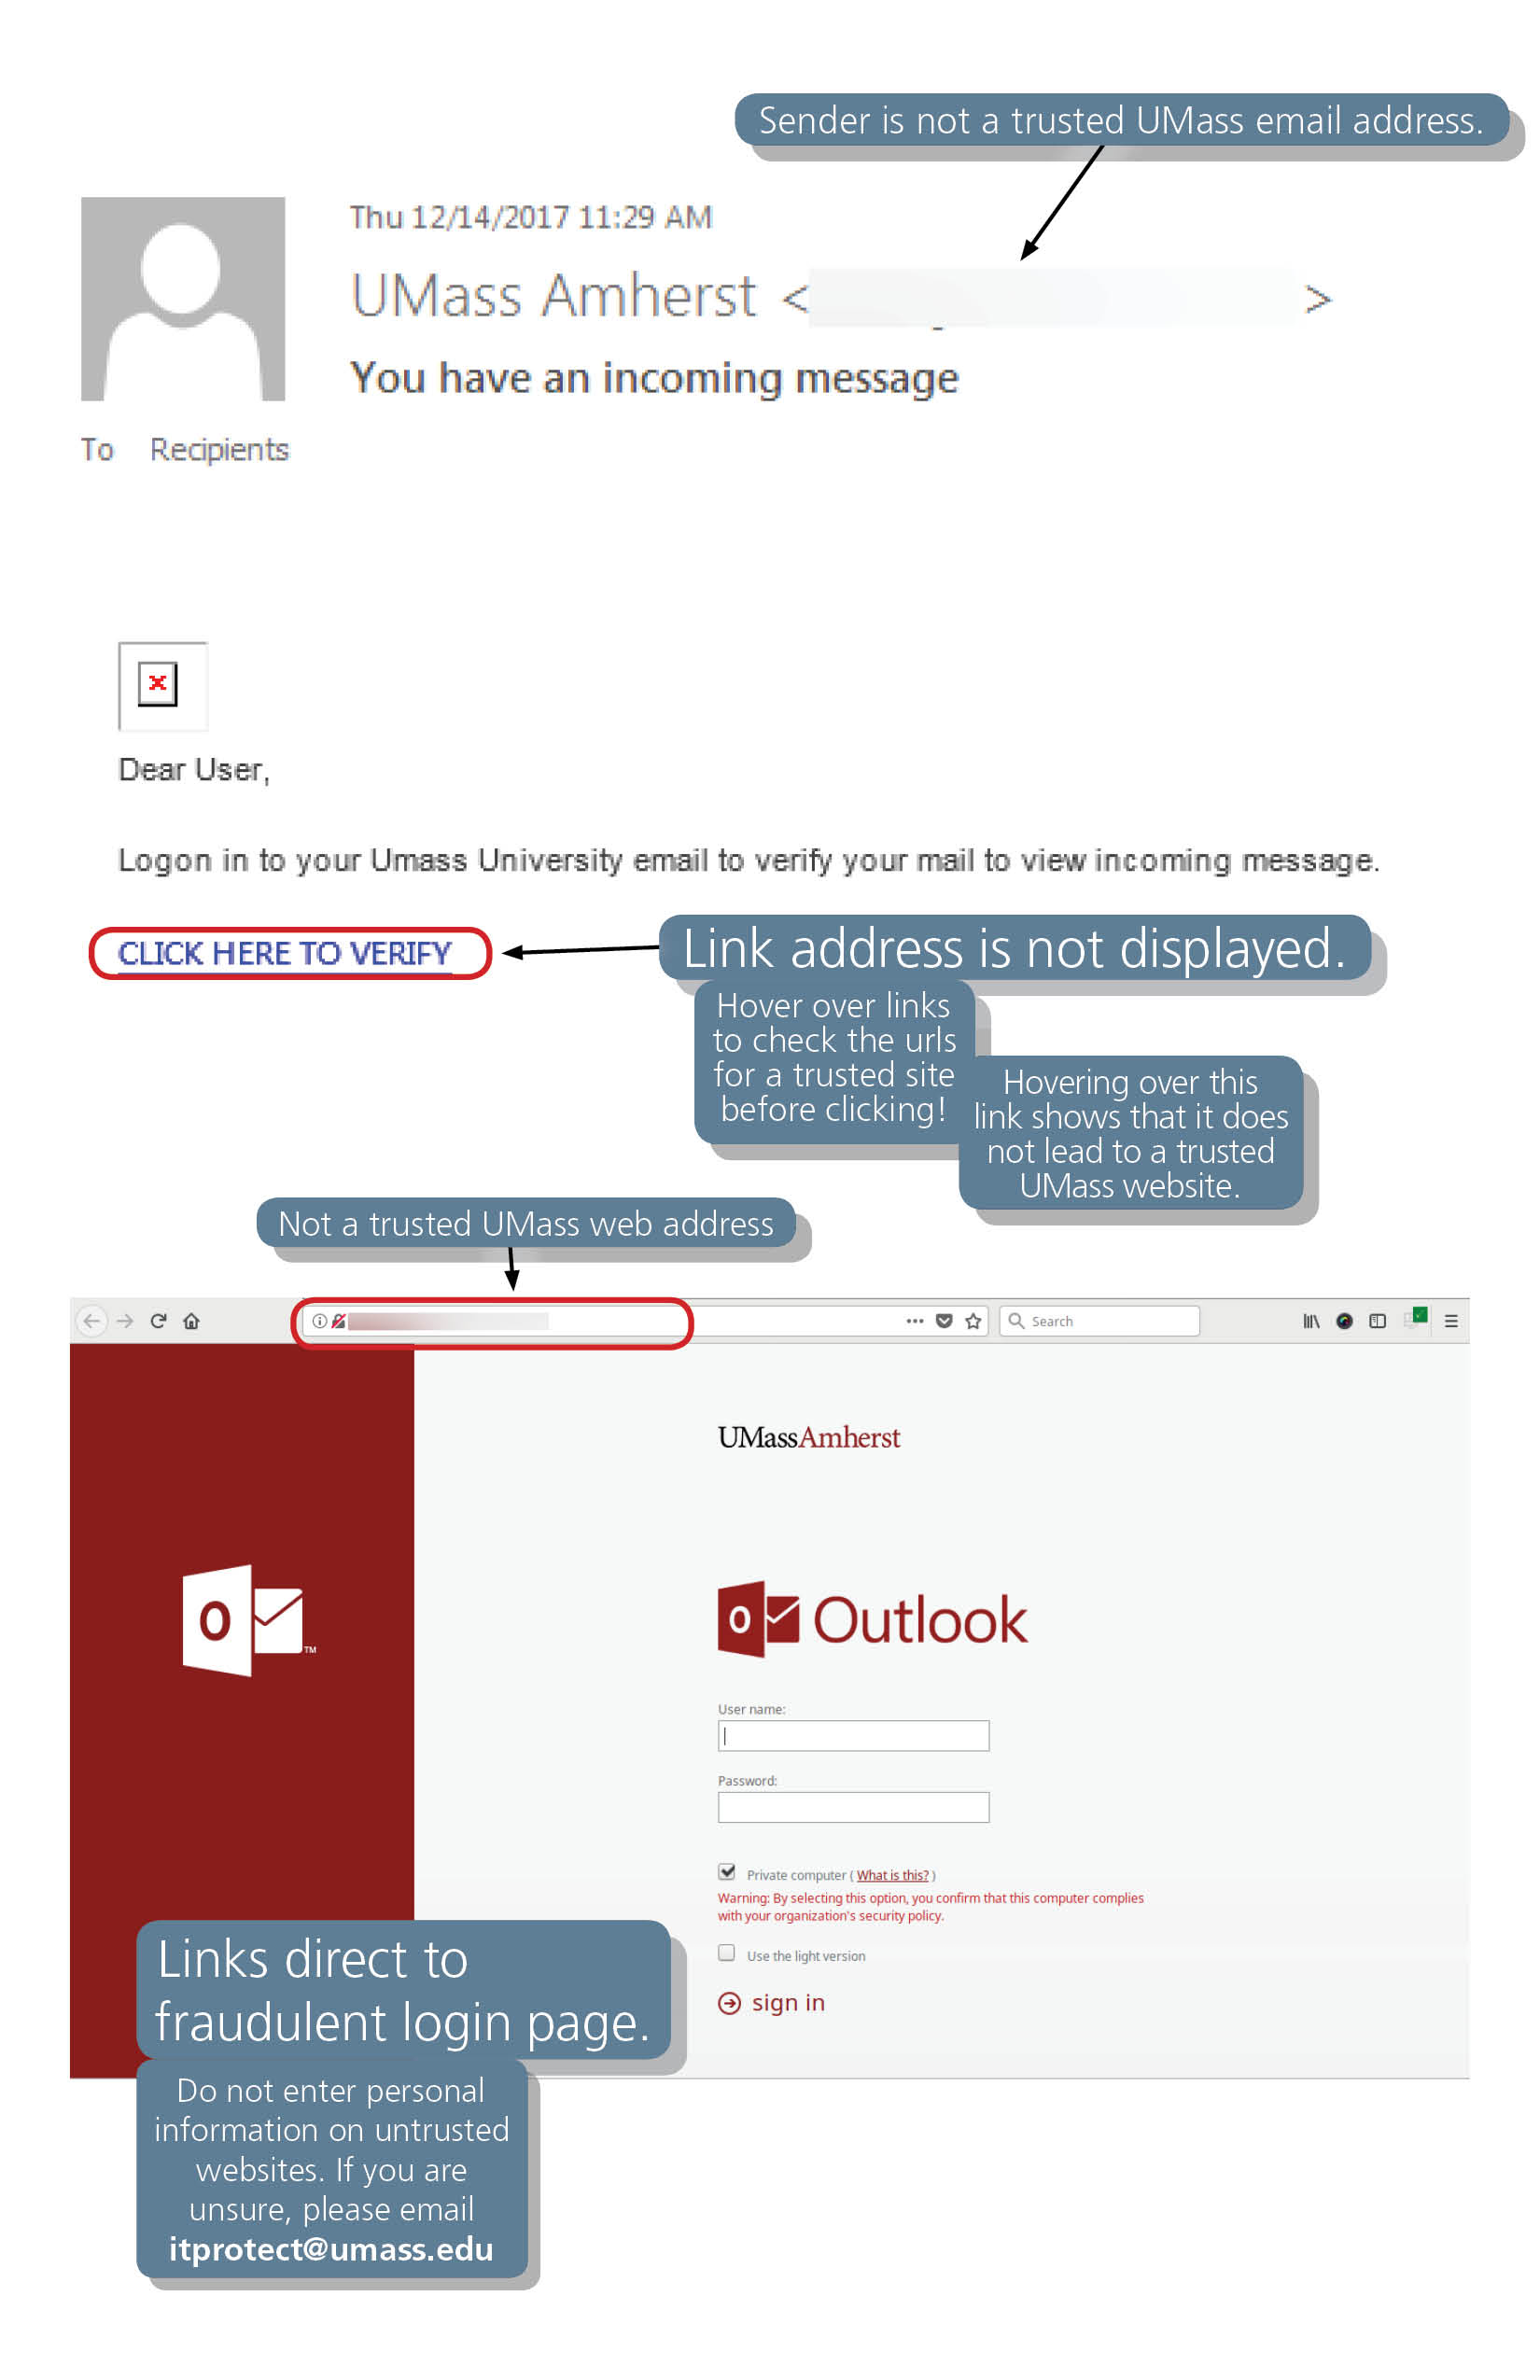 Phishing example showing an email which was not sent by a trusted UMass email address. The email message instructs the recipient to click a link which does not show its address. The link directs to a fake version of the UMass Amherst login page.